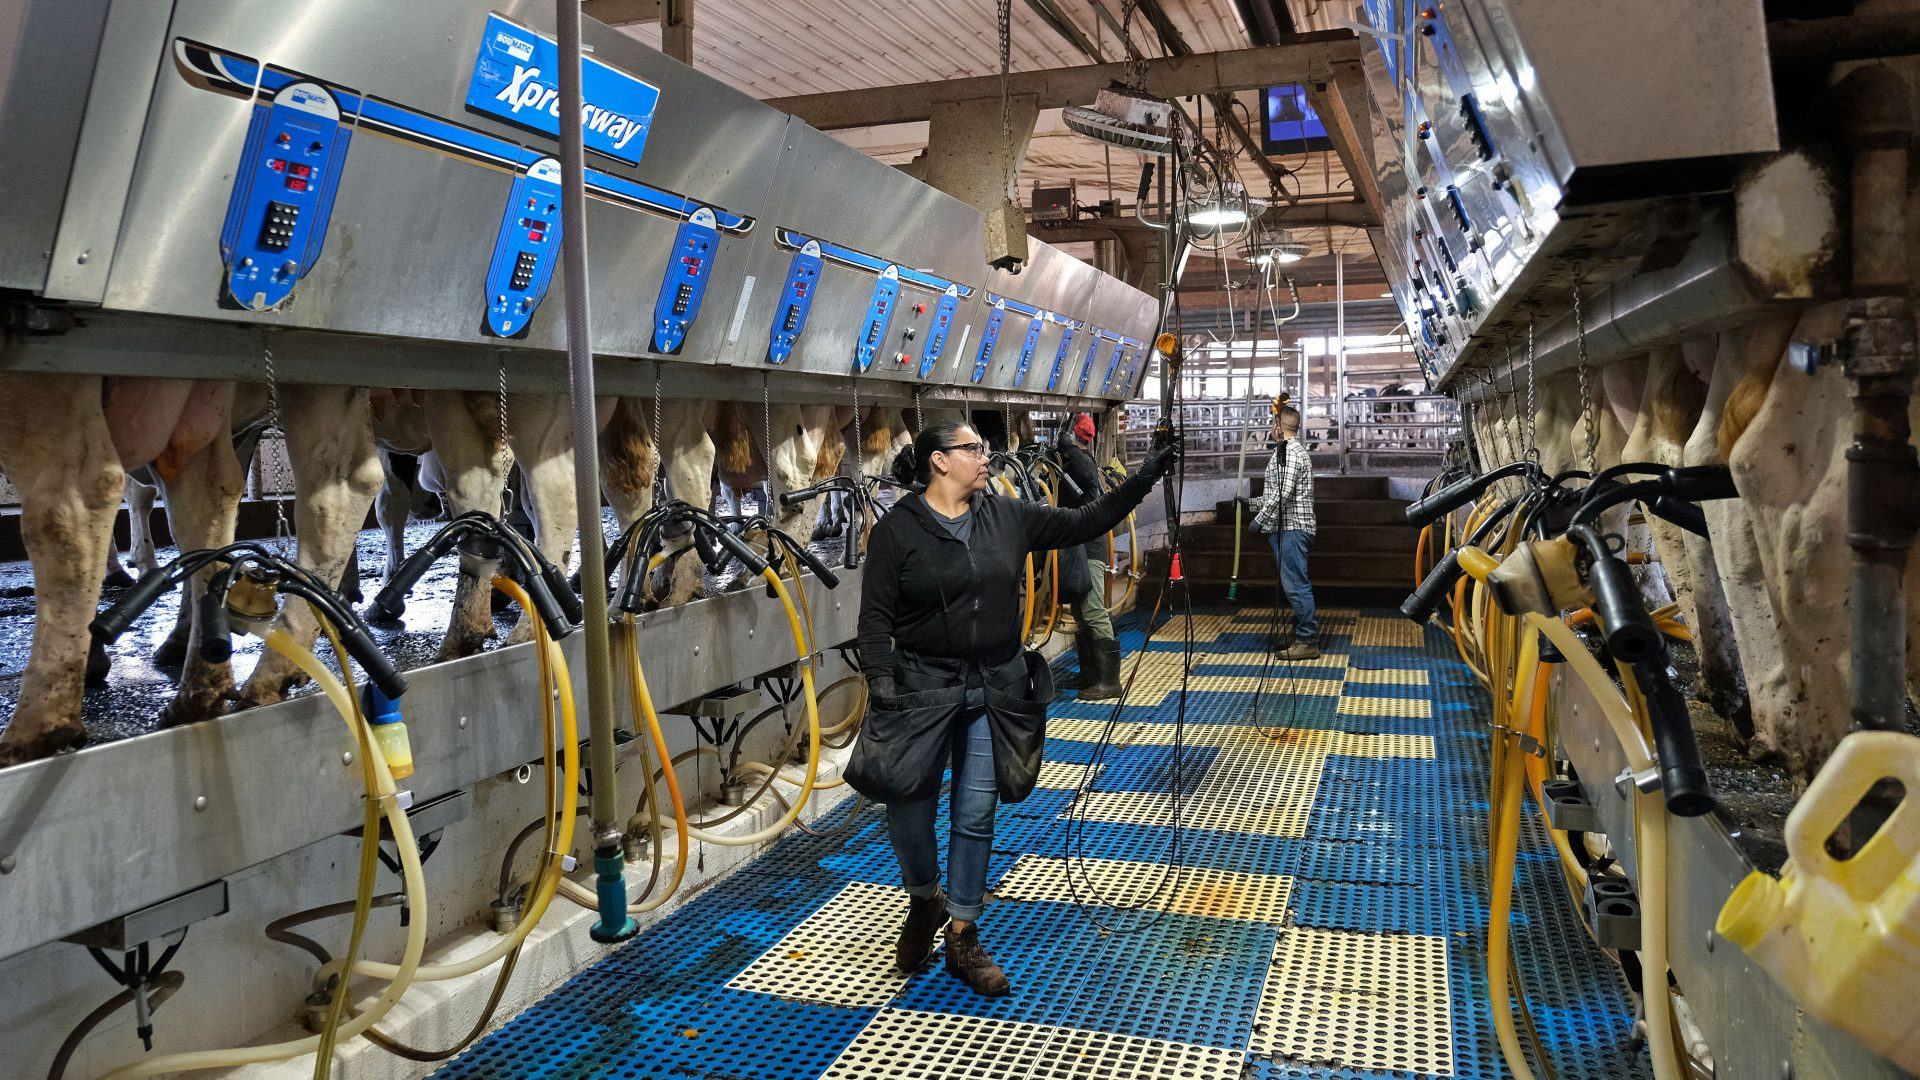 Workers operate an electronic milking machine as cows gather to be milked Sept. 25, 2019, at Ar-Joy Farms in West Fallowfield Township, Pennsylvania.